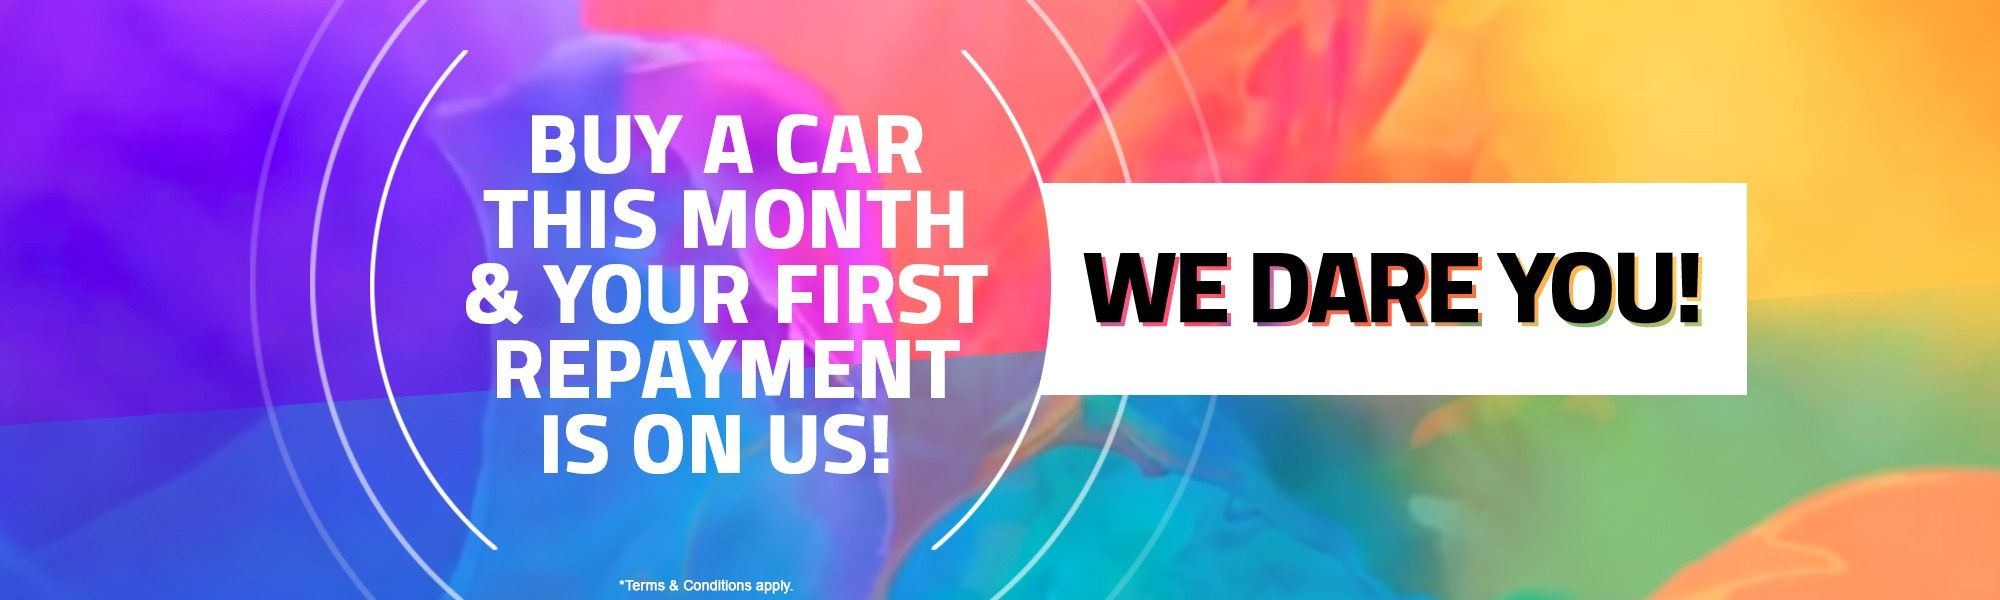 Buy a car this month & your first repayment is on us